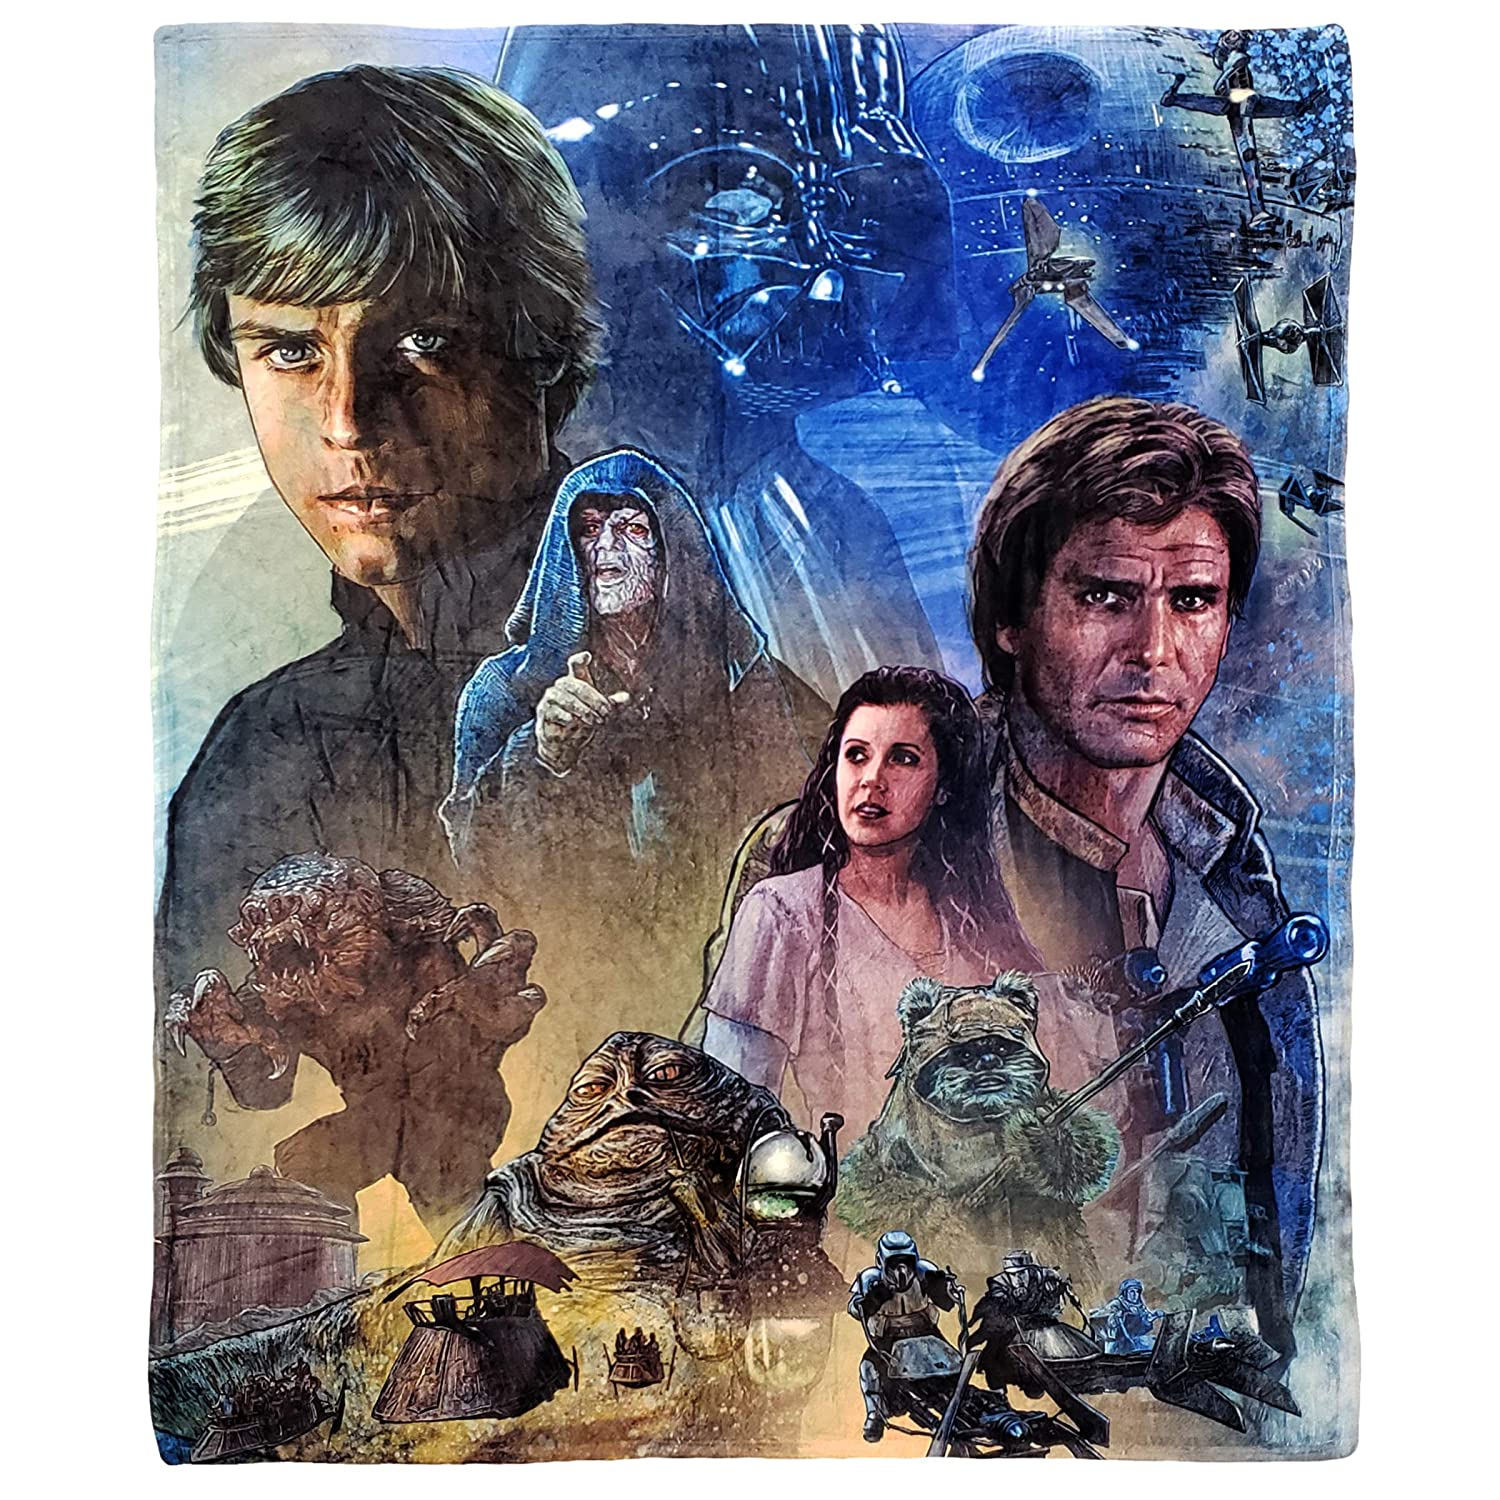 Return of The Jedi Star Wars Silk Touch Throw Blanket 50  x 60 , One Size Multi color